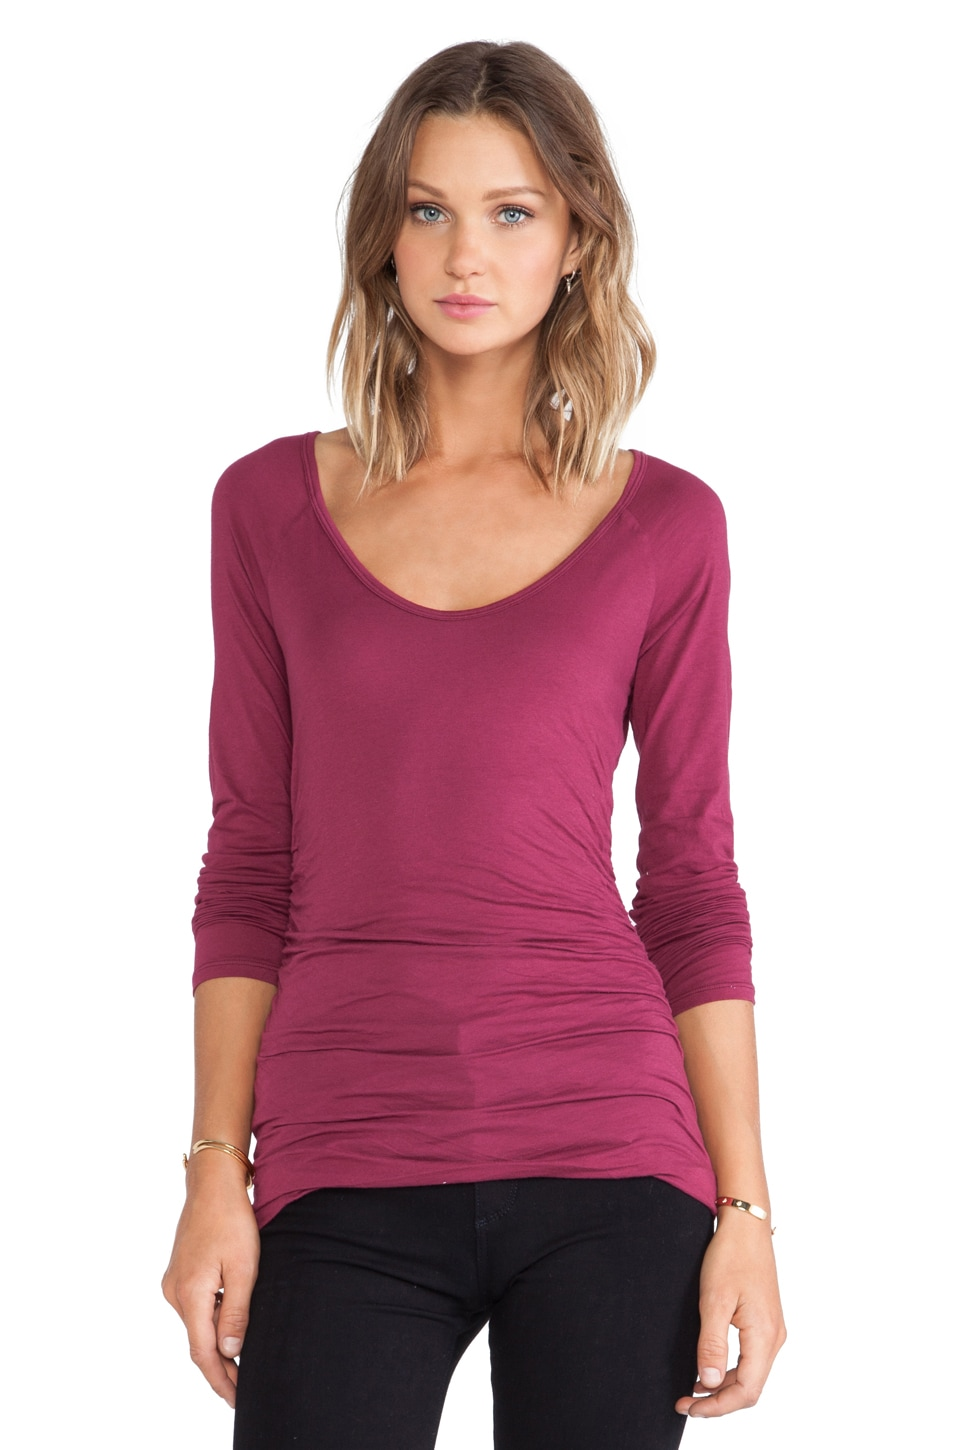 Velvet by Graham & Spencer Amora Gauzy Whisper Top in Wildberry